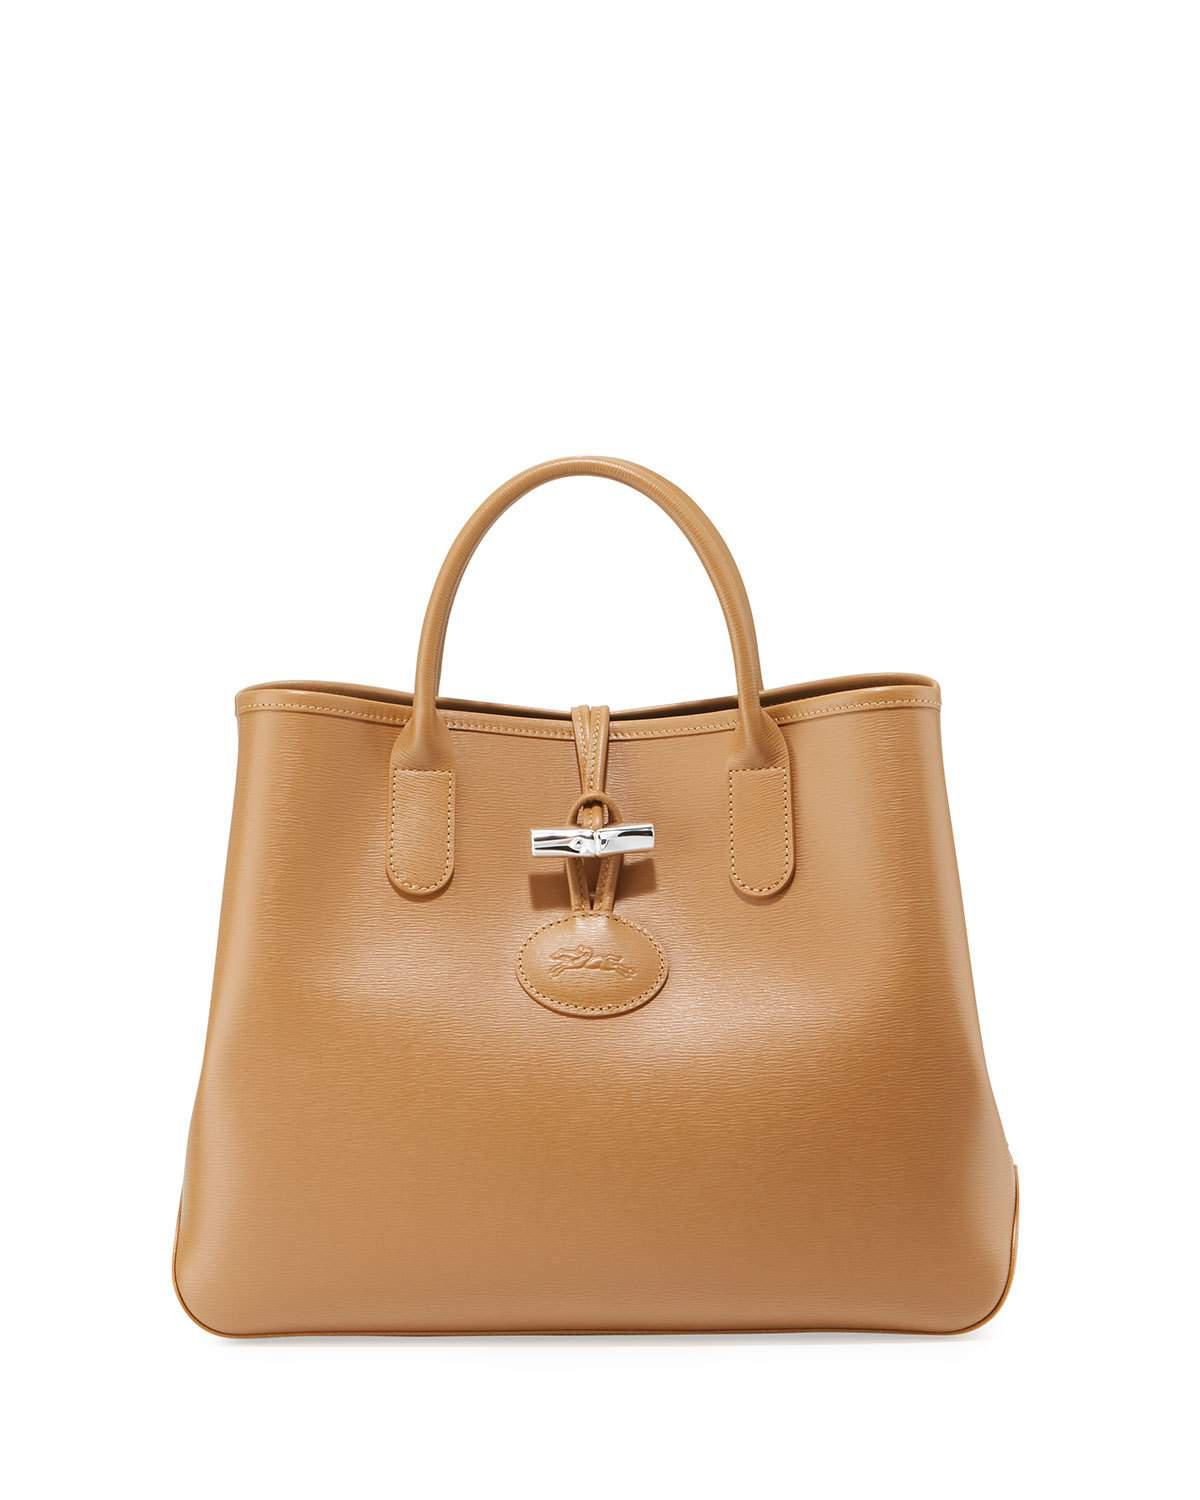 Longchamp Roseau Leather Top-handle Tote Bag in Brown - Lyst 62479d3844059